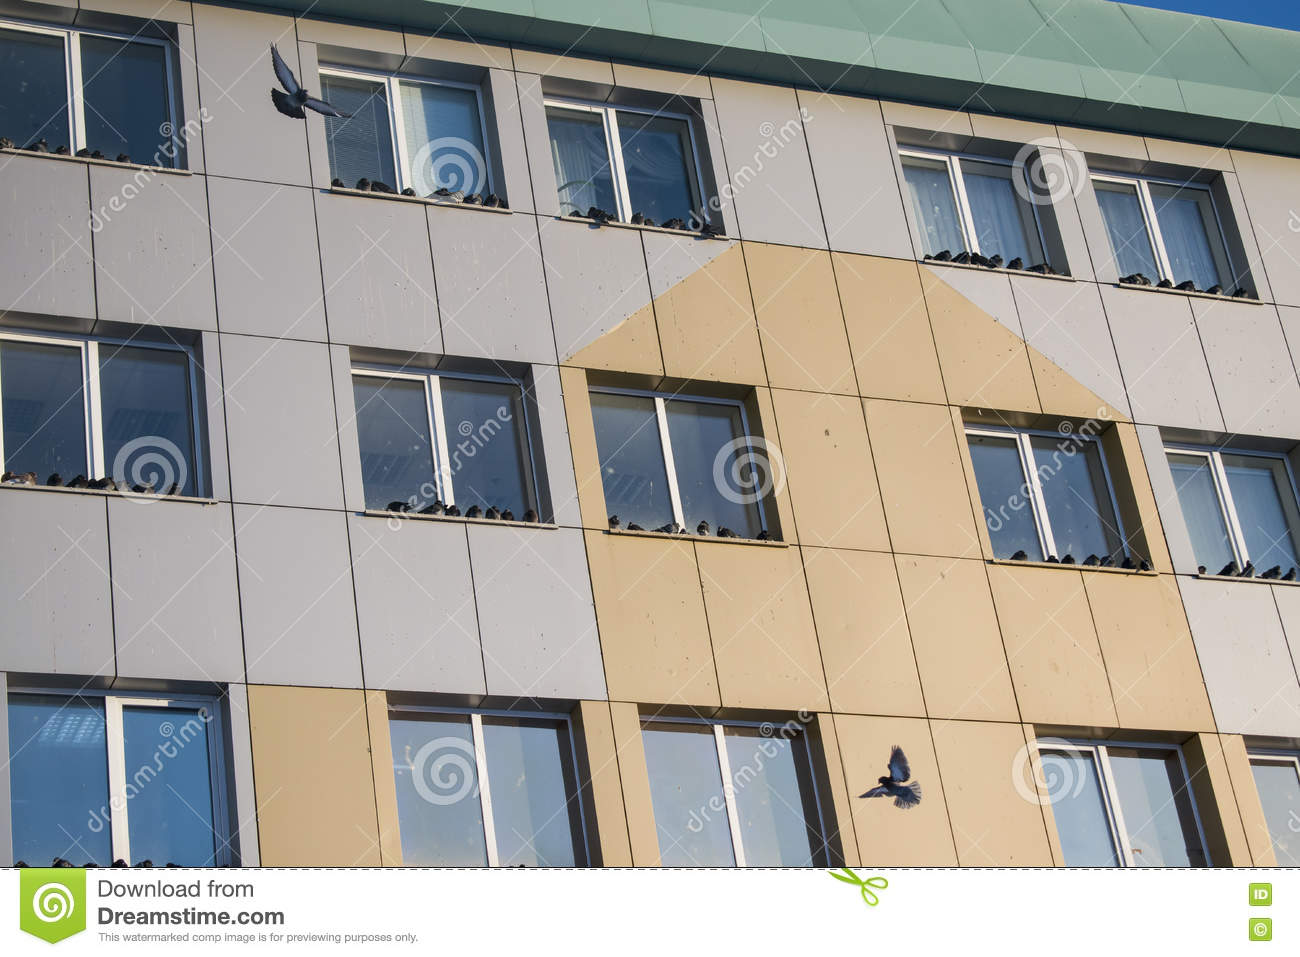 Download The Wild Pigeons Sitting On Ledge Of A Skyscraper Stock Photo